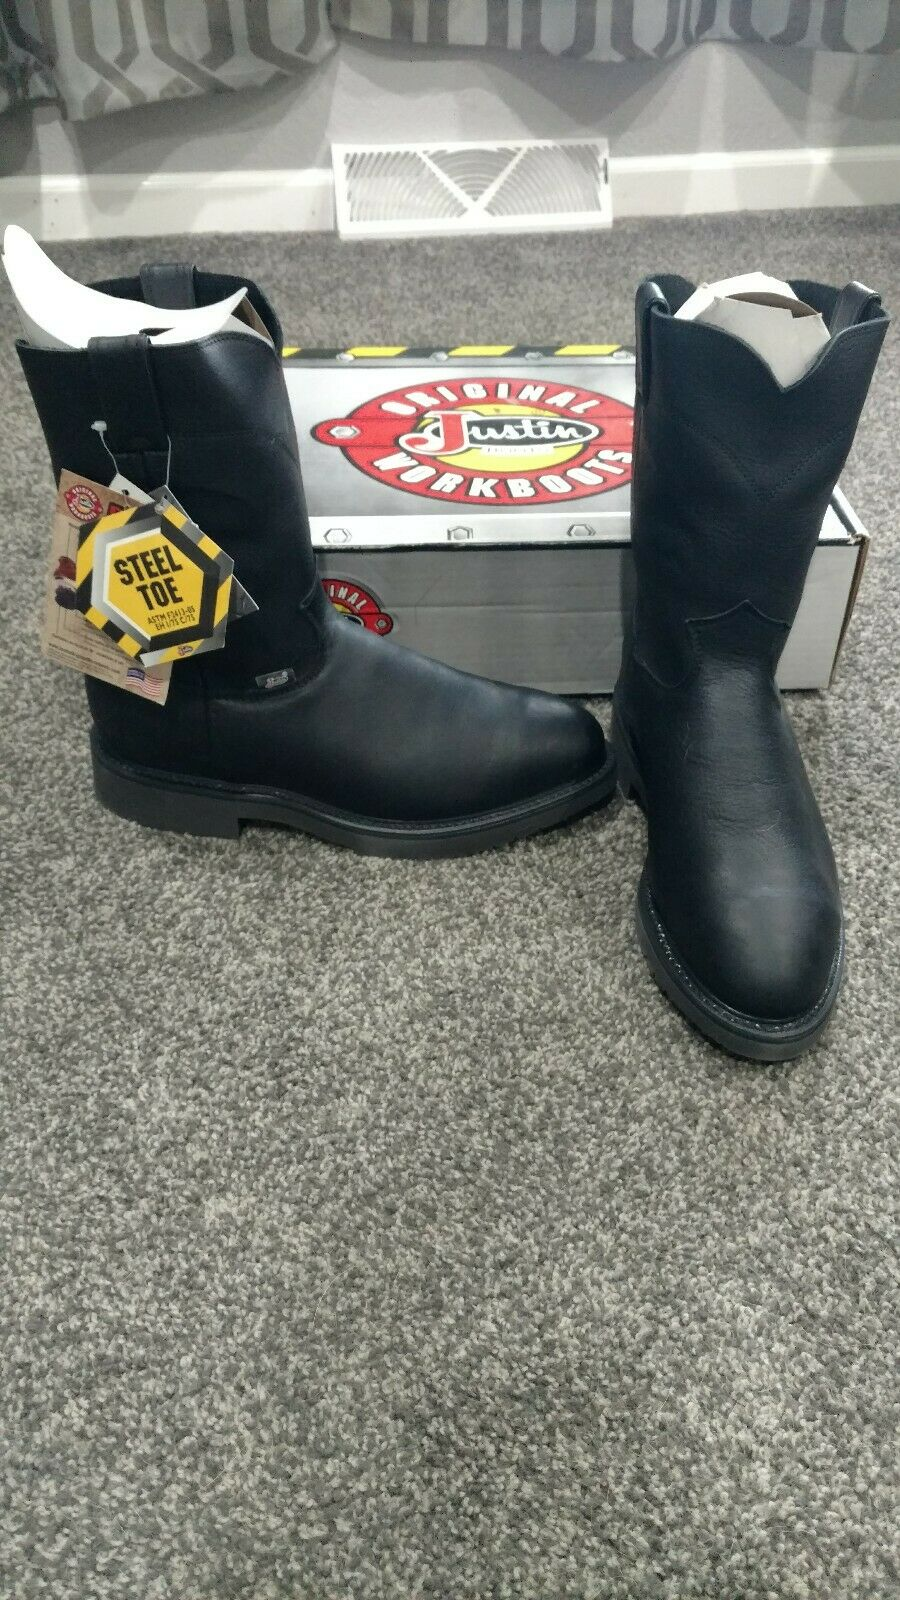 8419035dcd9 Justin work boots steel toe 9 2 extra wide 10 shaft pitstop style ...